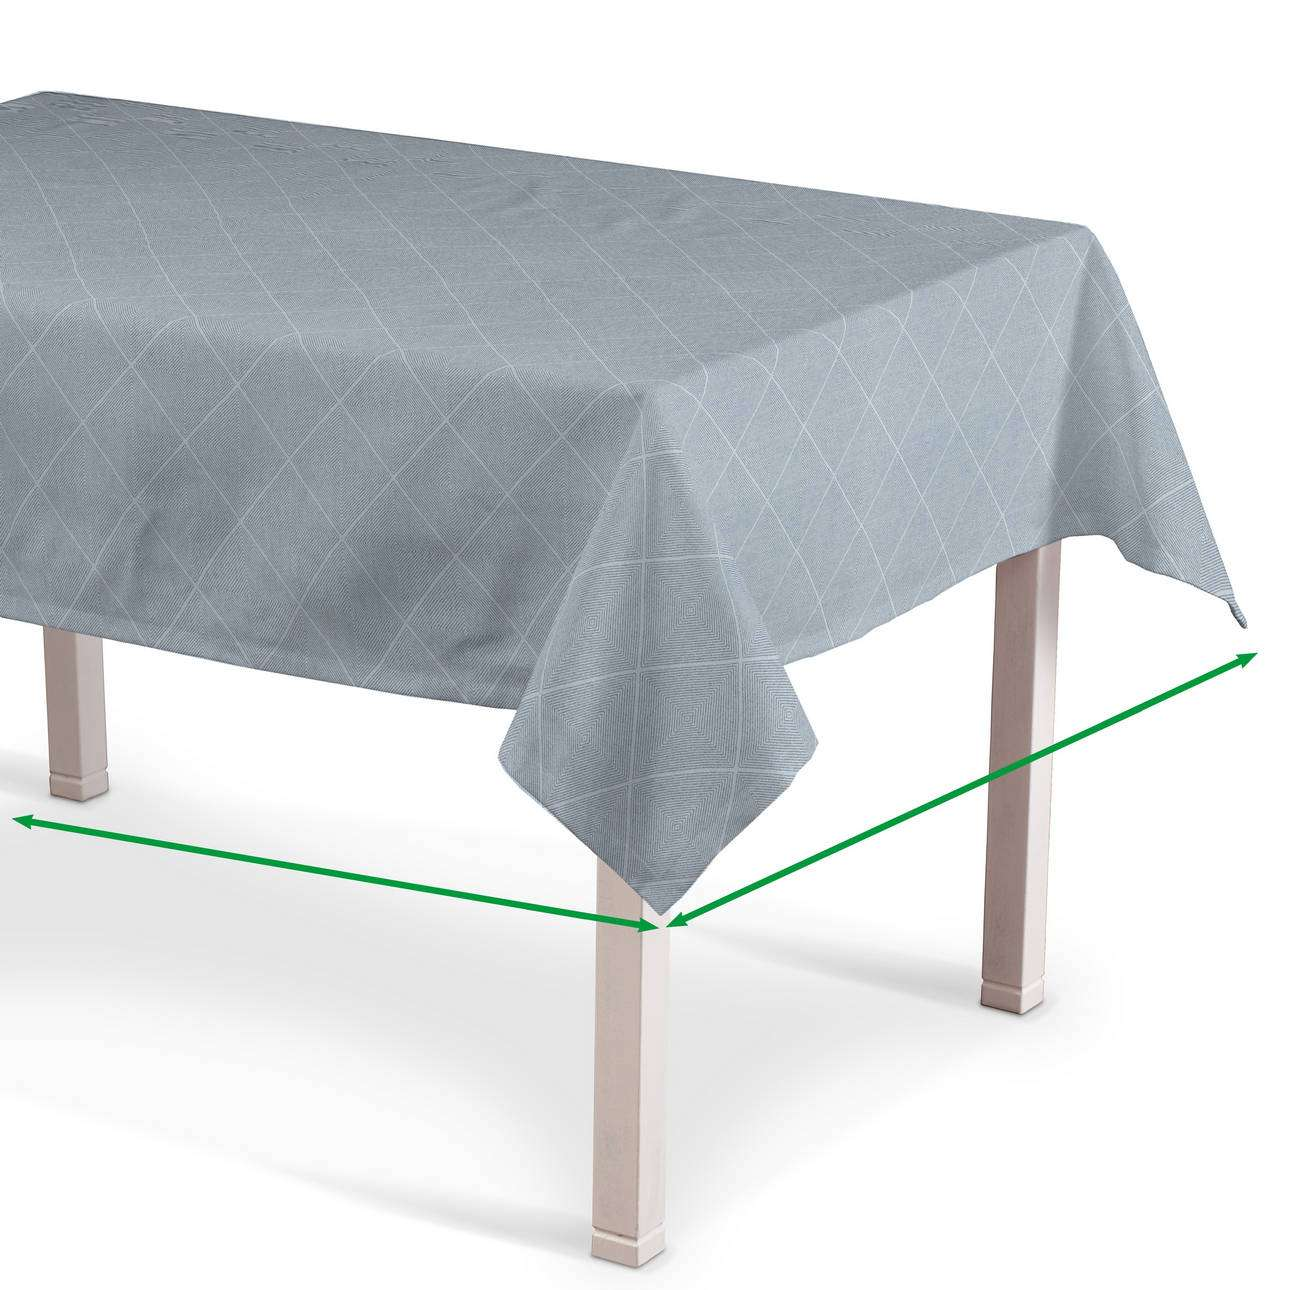 Rectangular tablecloth in collection Venice, fabric: 142-57